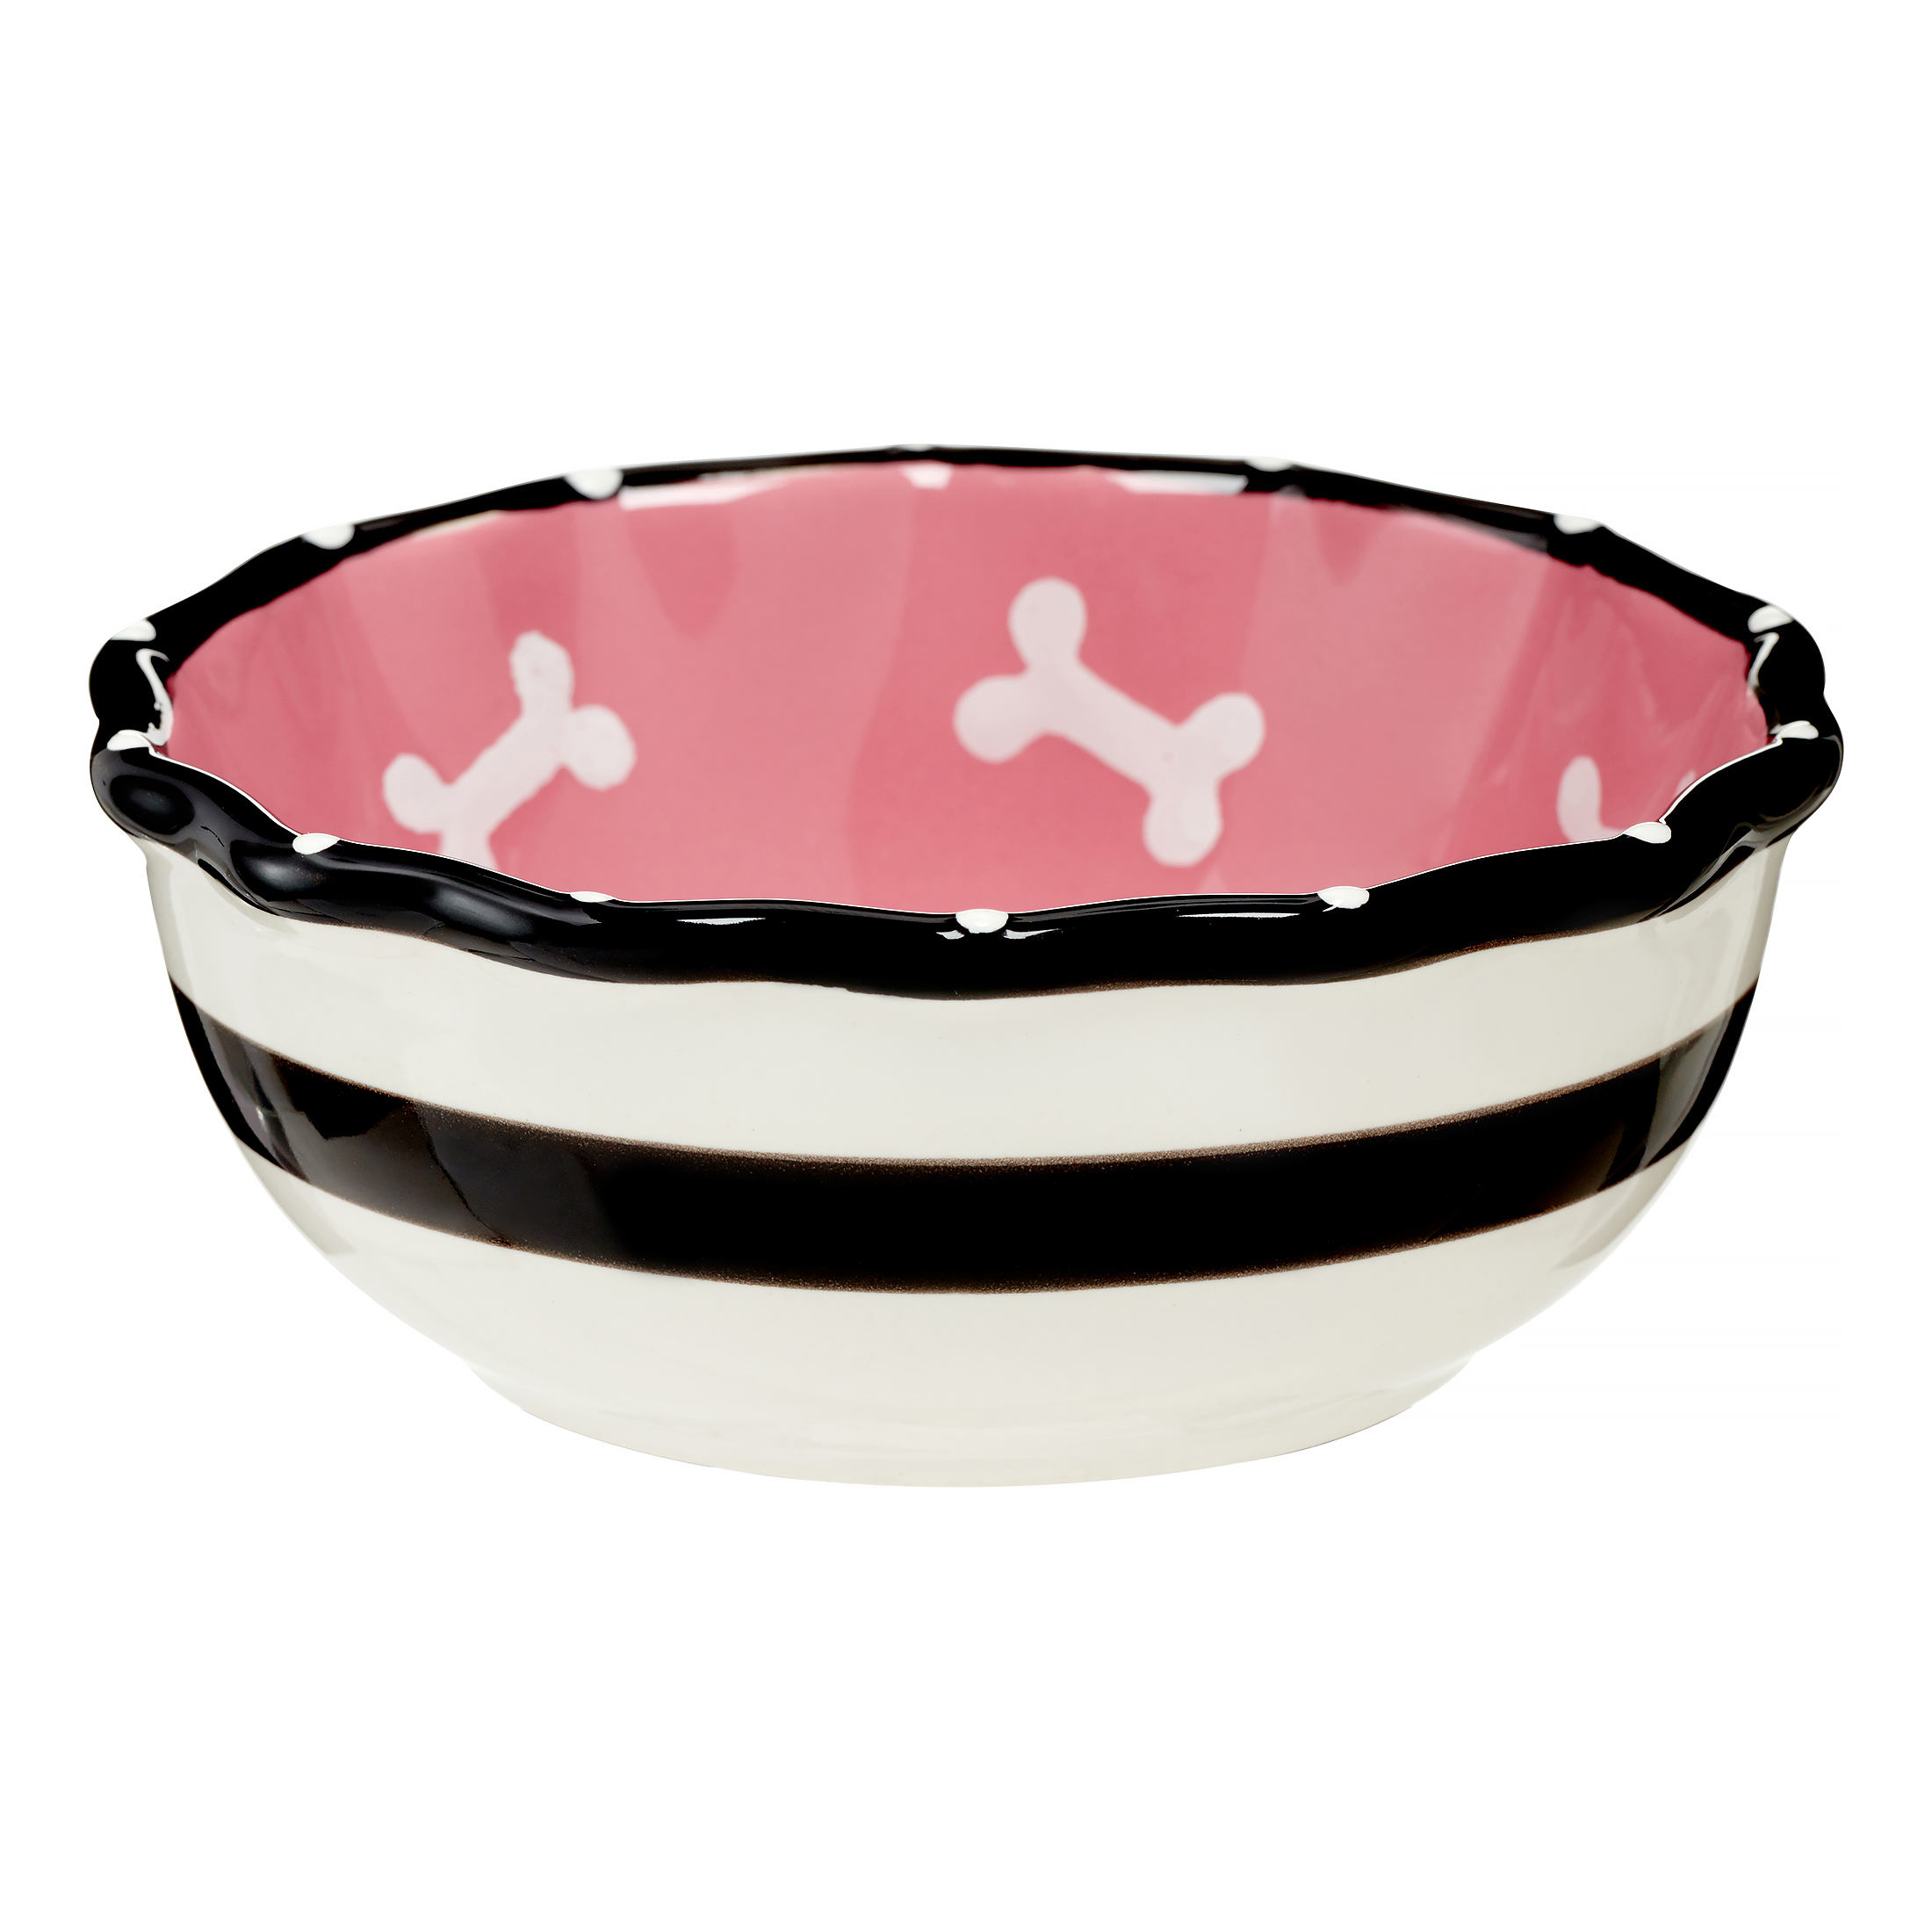 Contemporary Ruffle Dish for Dogs, 5-Inch, Pink Multi-Colored